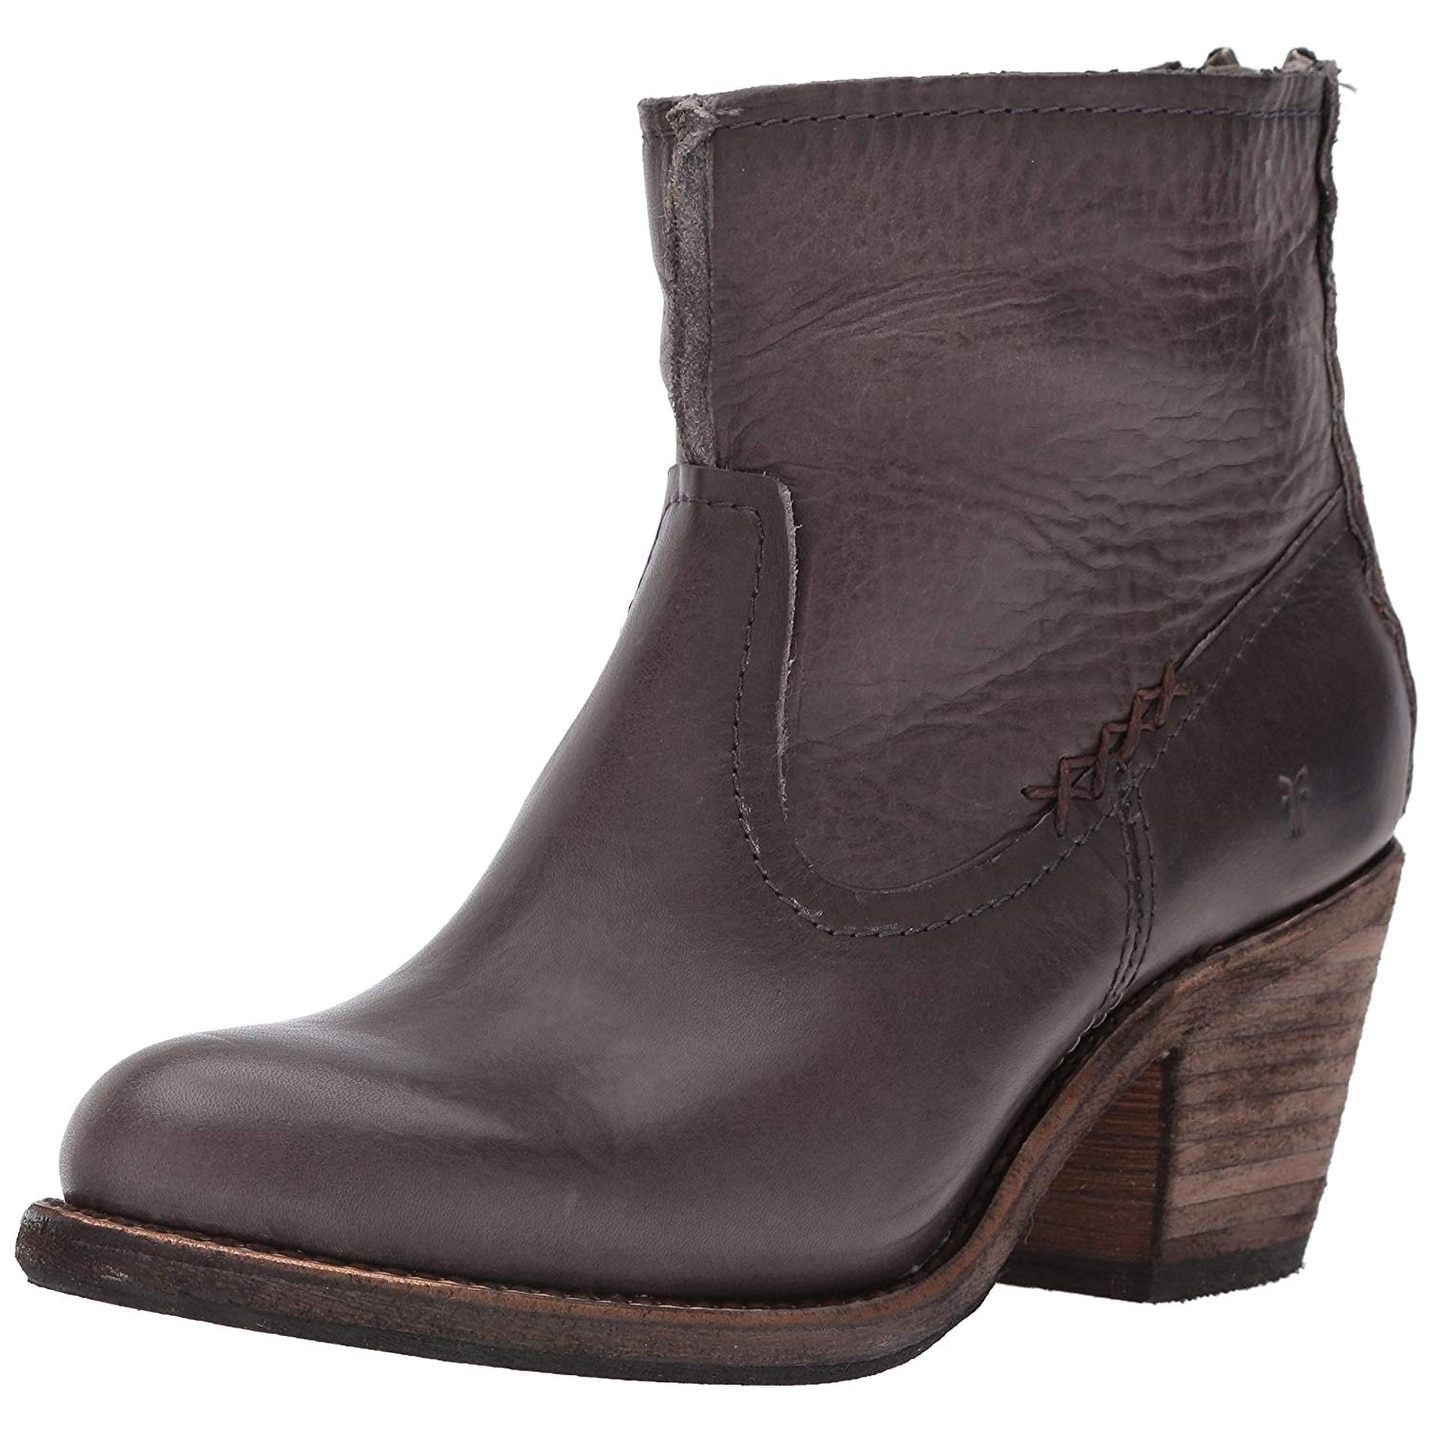 84637930f48 Buy Frye Women's Boots Online at Overstock | Our Best Women's Shoes ...